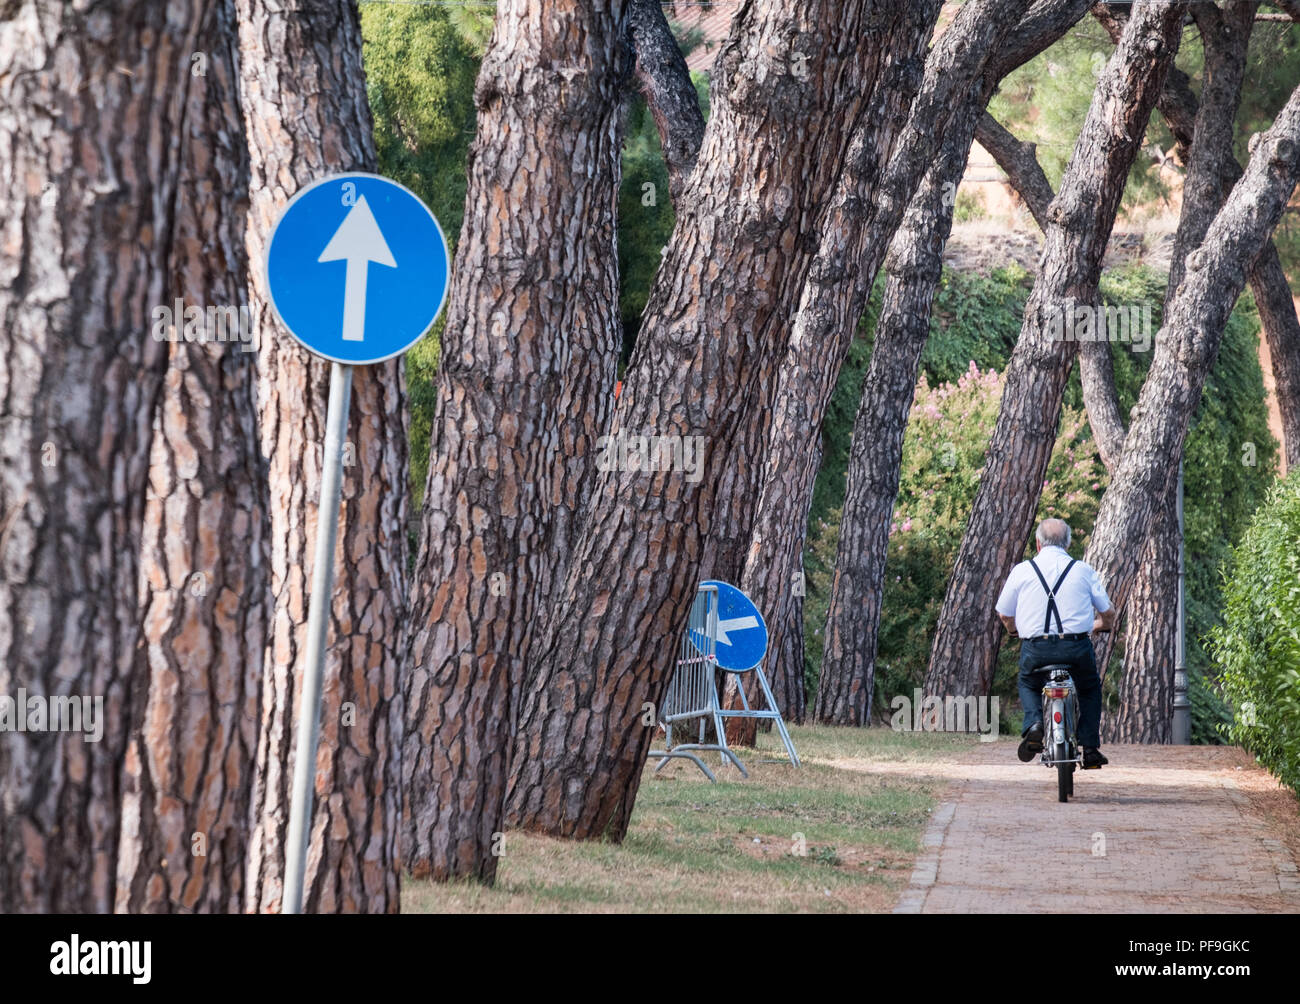 Man cycling along thick trunked tree lined on one way path wearing braces. Castel San Pietro Terme Italy, Europe. - Stock Image